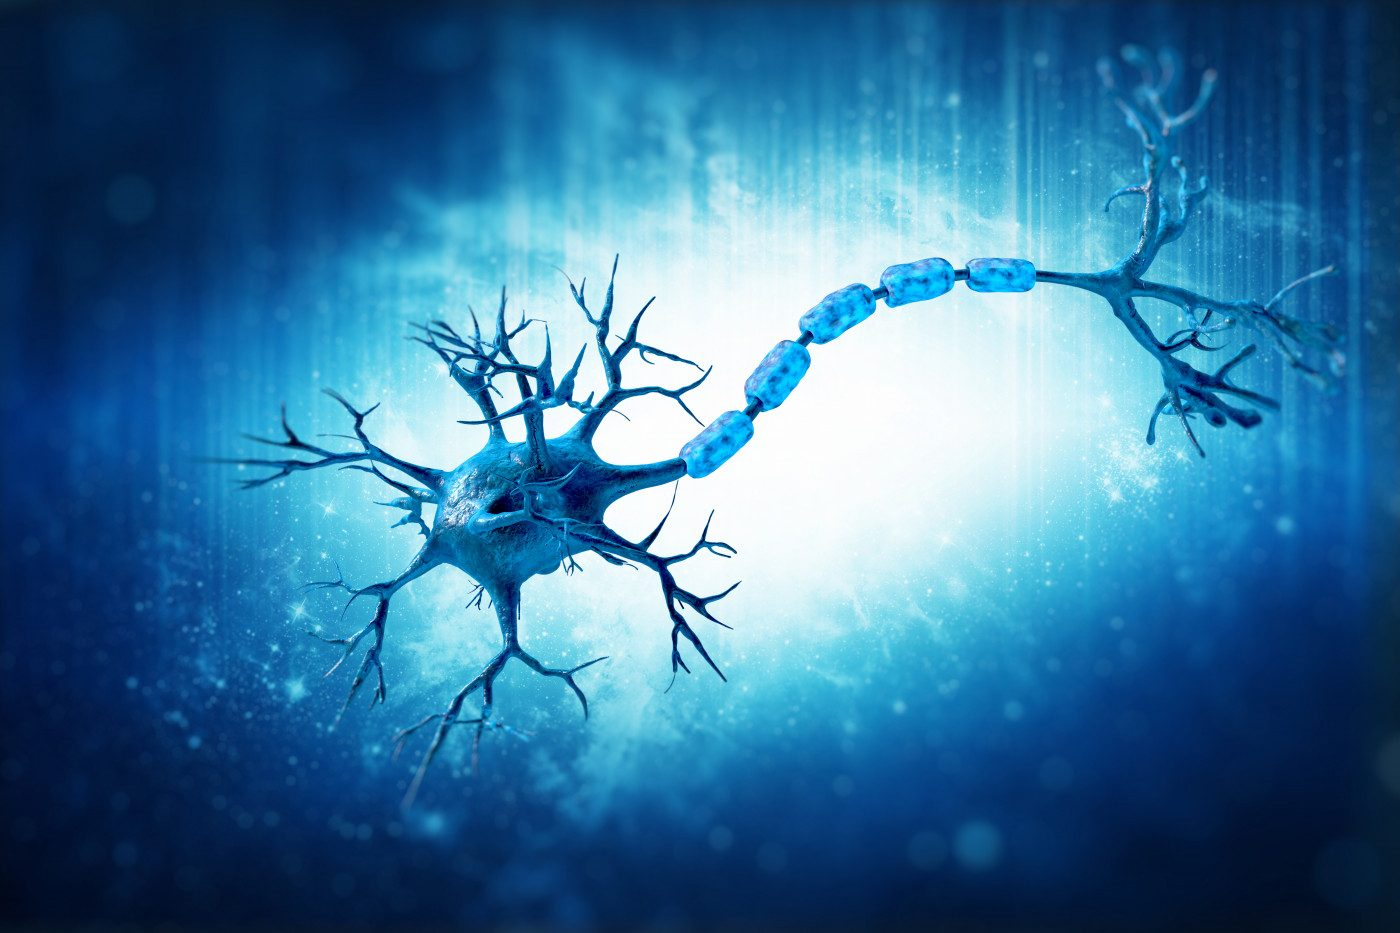 Small Molecule Shows Ability to Limit Autoimmune Response in MS, Mouse Study Reports